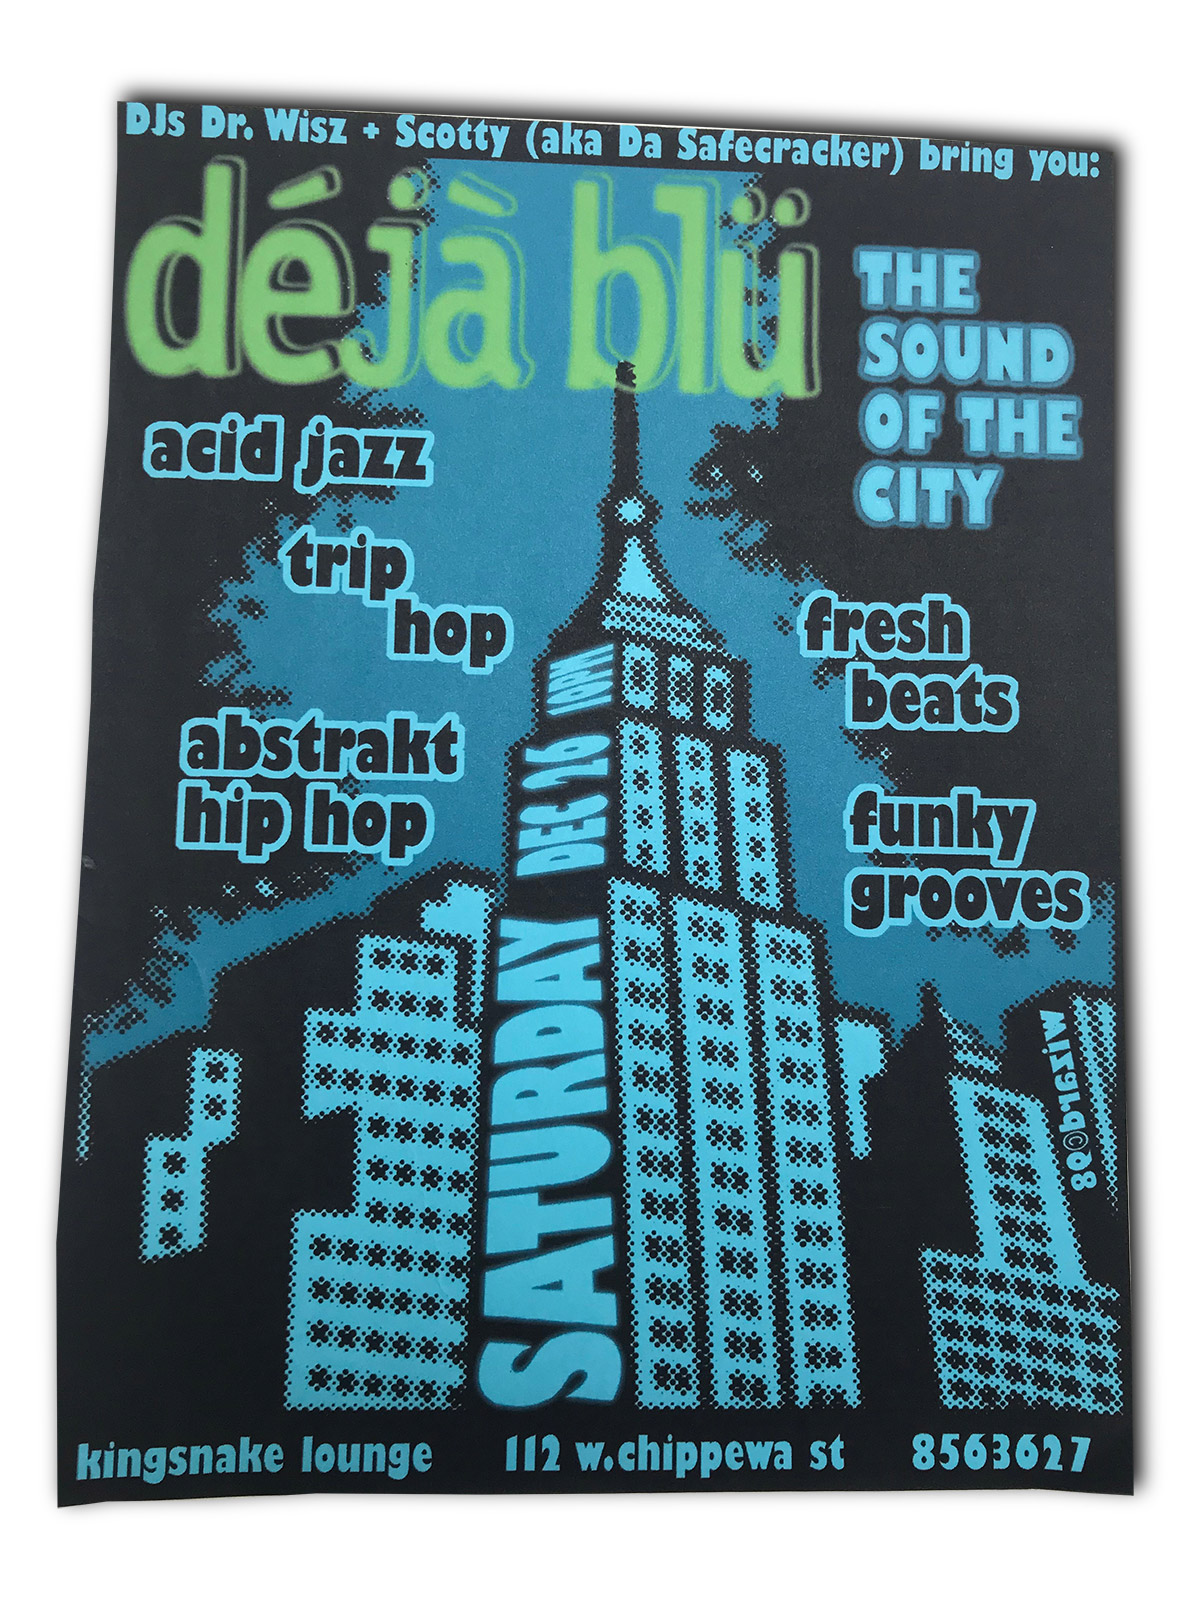 dejablu, deja blu, the sound of the city, DJ Dr Wisz, DJ Scotty, Kingsnake lounge, buffalo ny, mark wisz, poster design